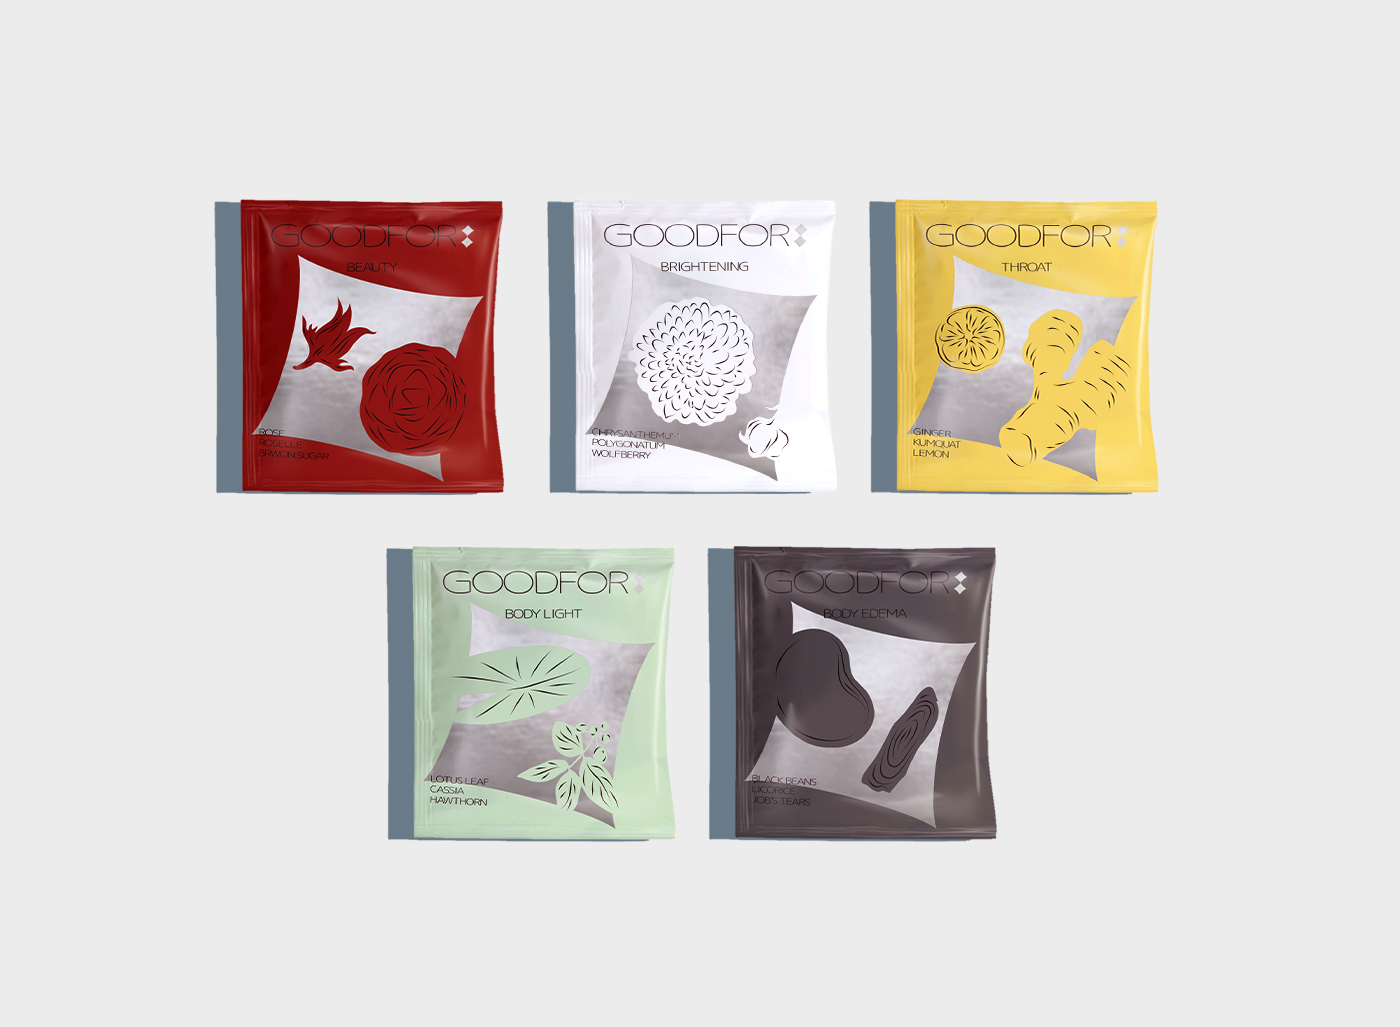 Lung Hao Chiang Creates Visual Identity Design Concept for Goodfor Chinese Herb Tea